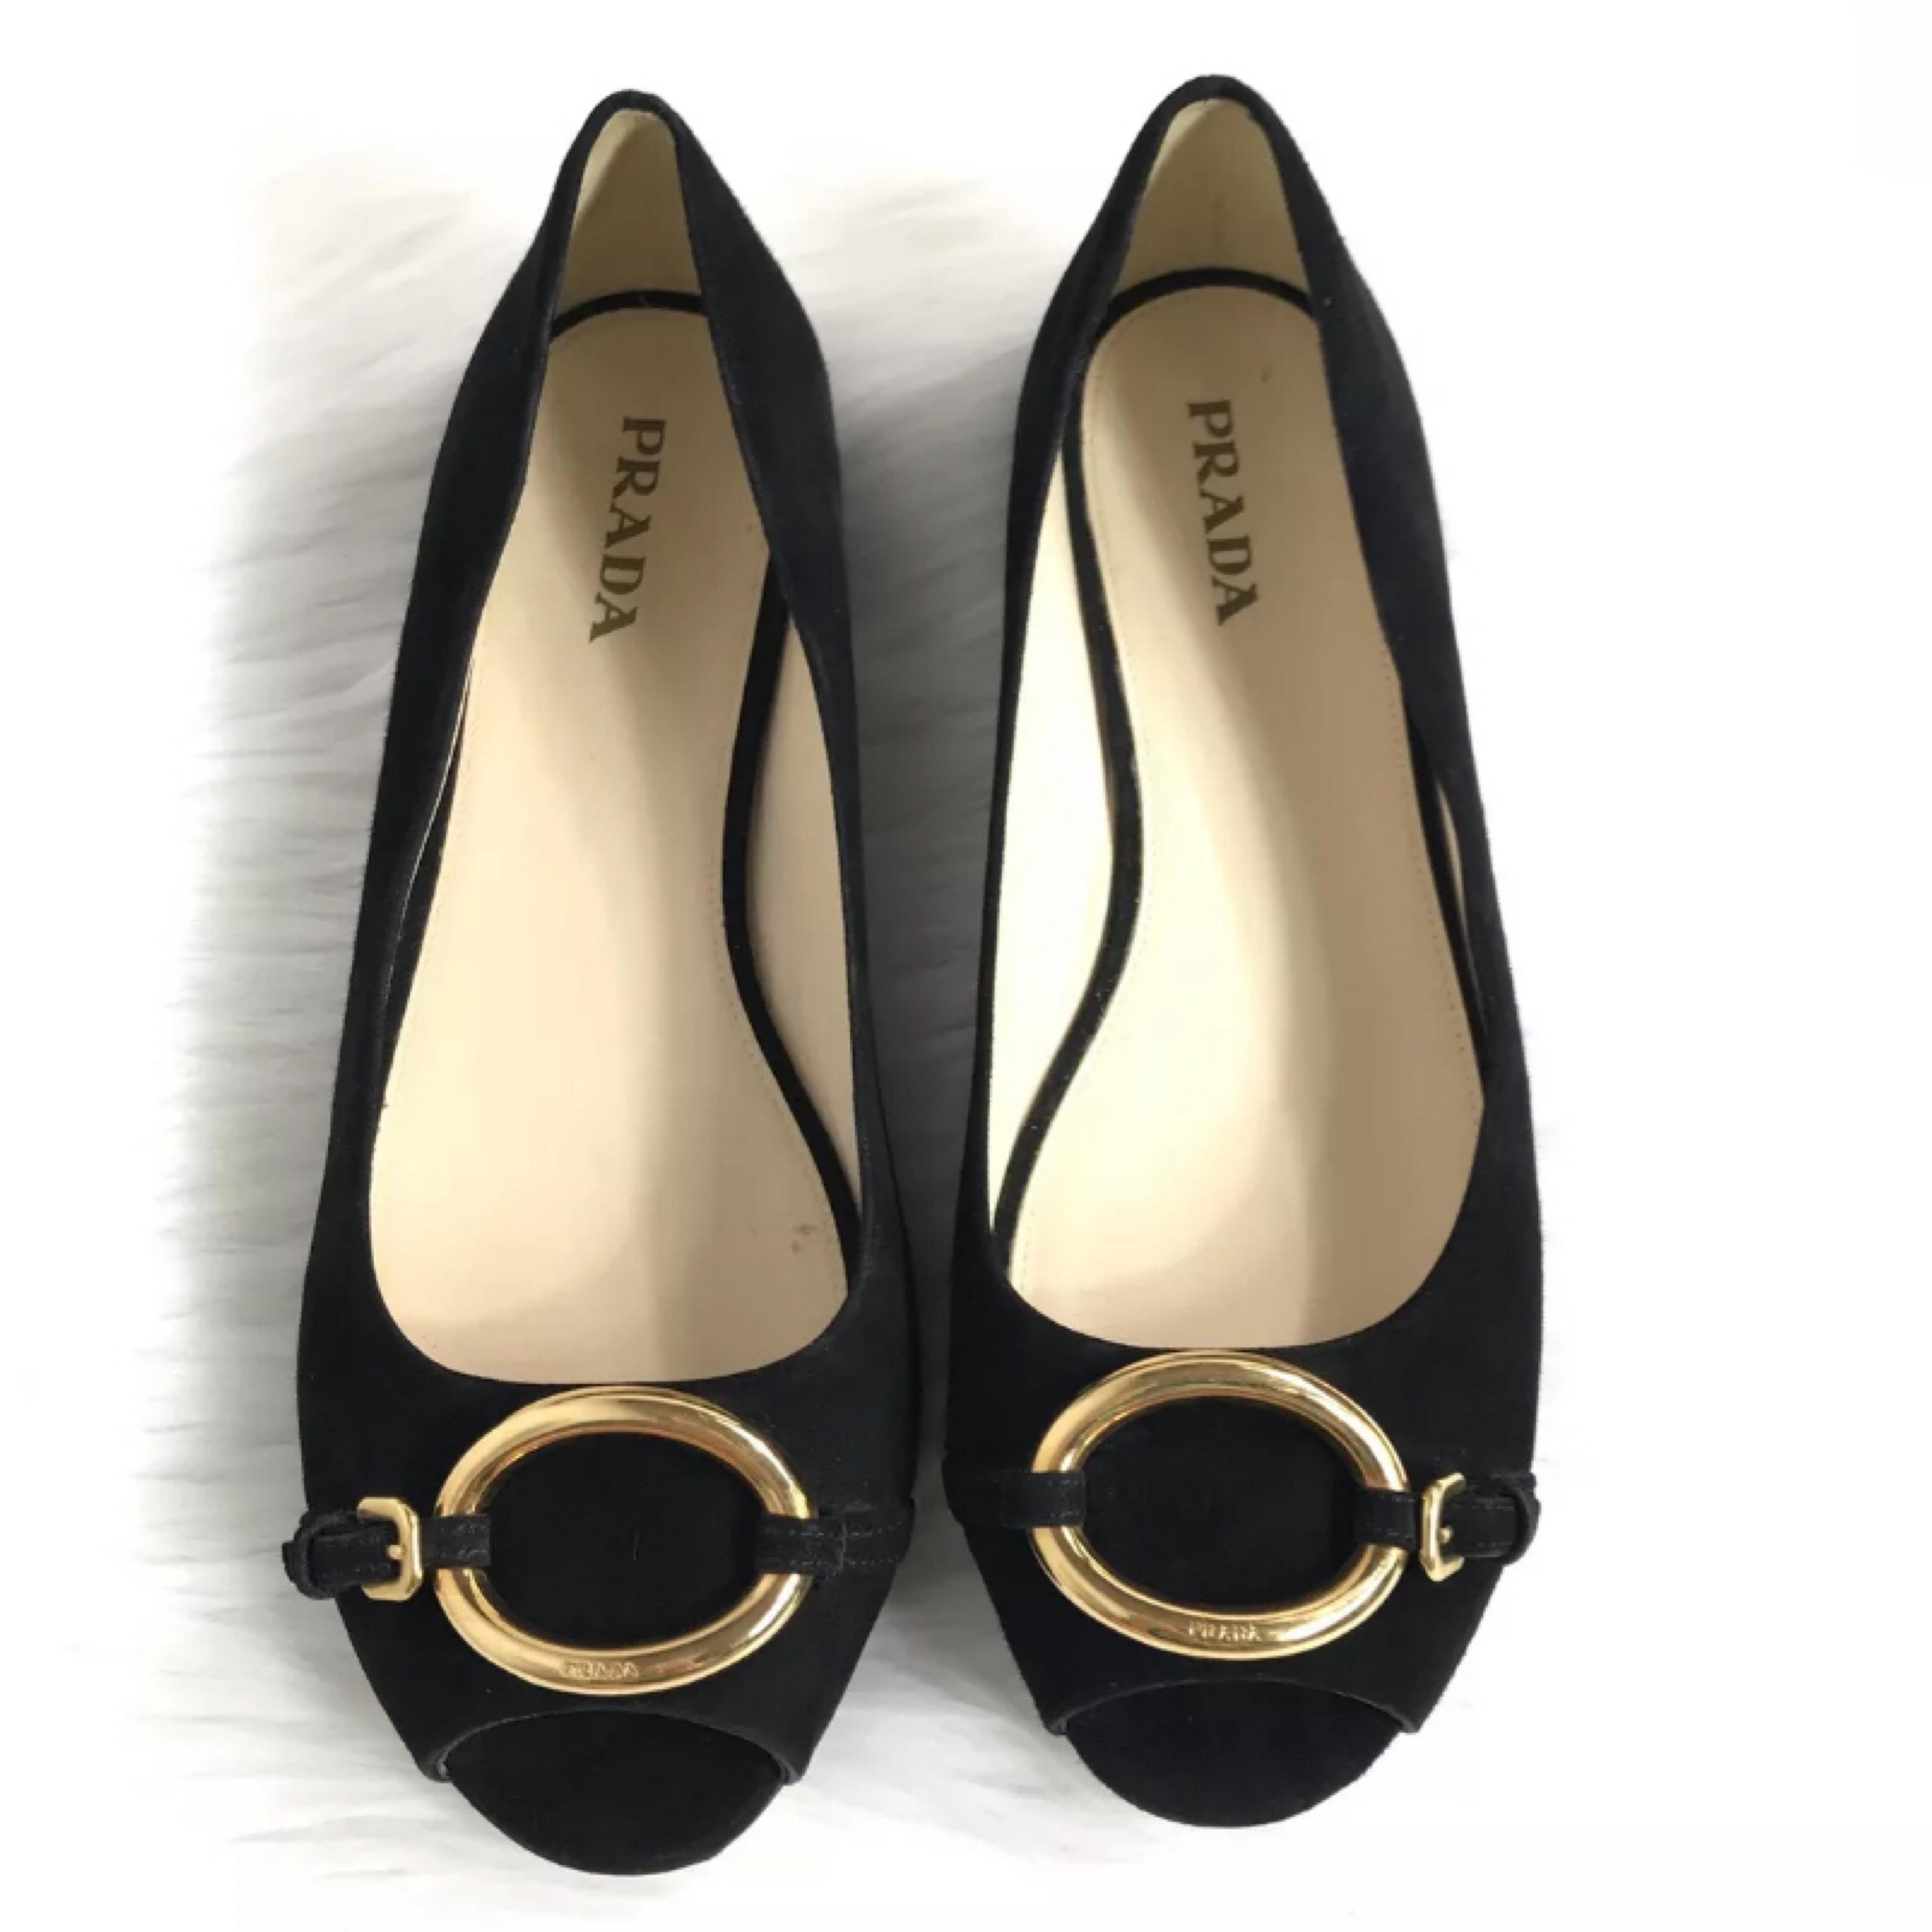 0a4e8d9dae6b Prada Black and and and Gold Open Toe Suede Flats Size EU 40 (Approx. US  10) Regular (M